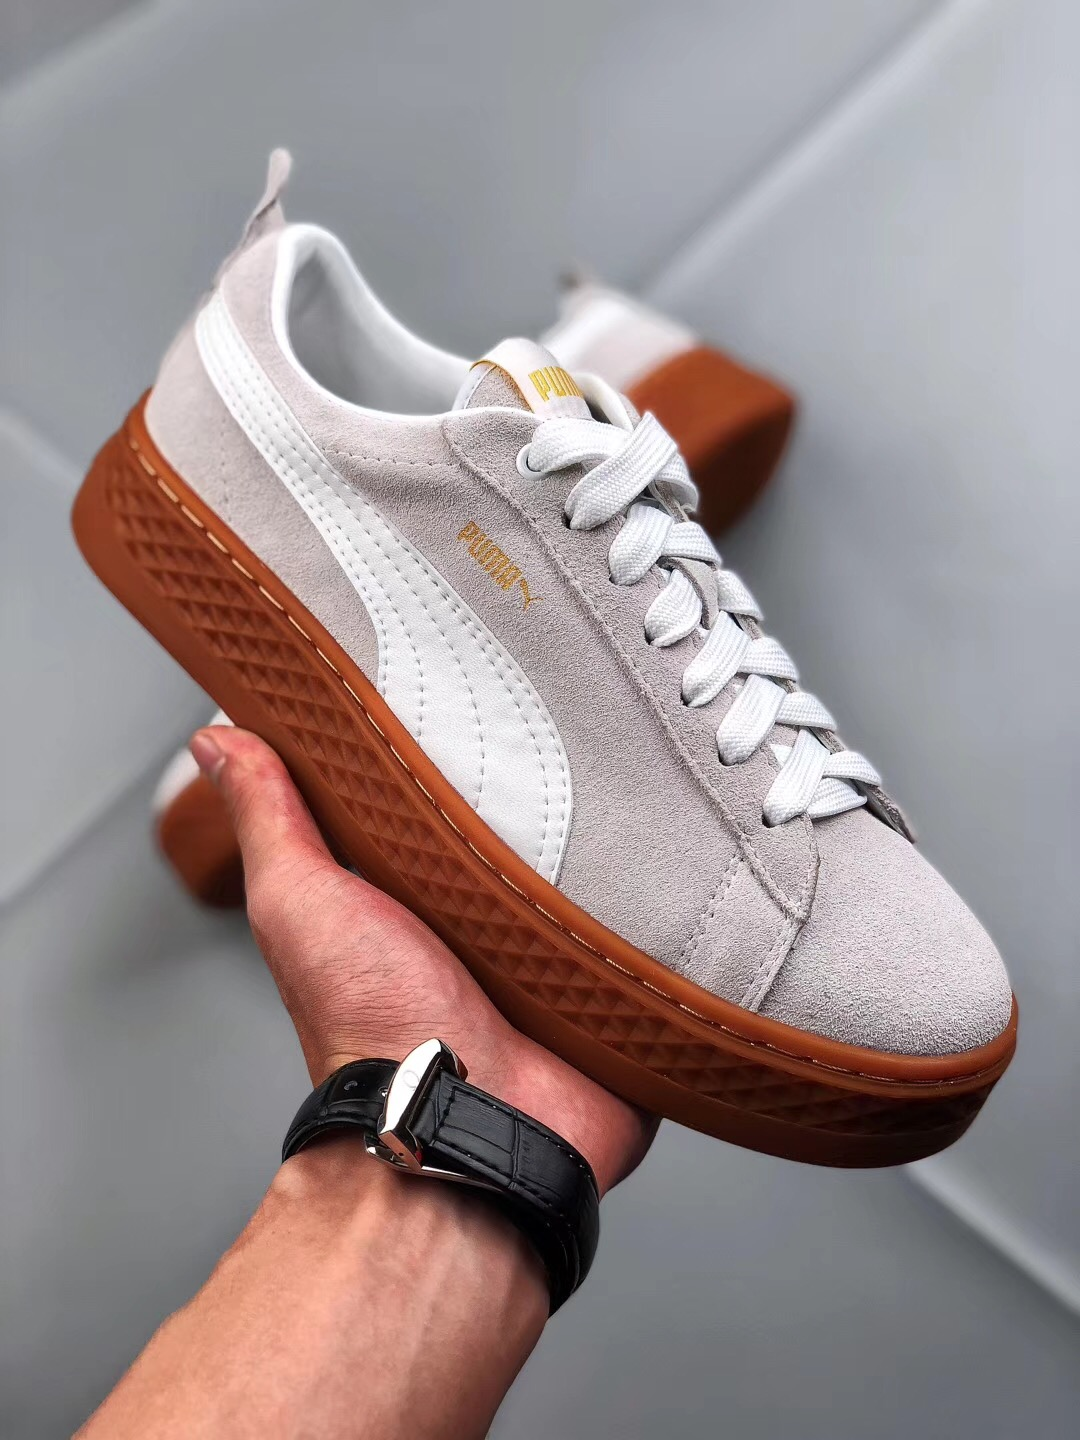 2018 PUMA sports shoes women Suede Cleated Creeper First Generation Rihanna  sneakers fenty cougar shoes woman 87a552d39